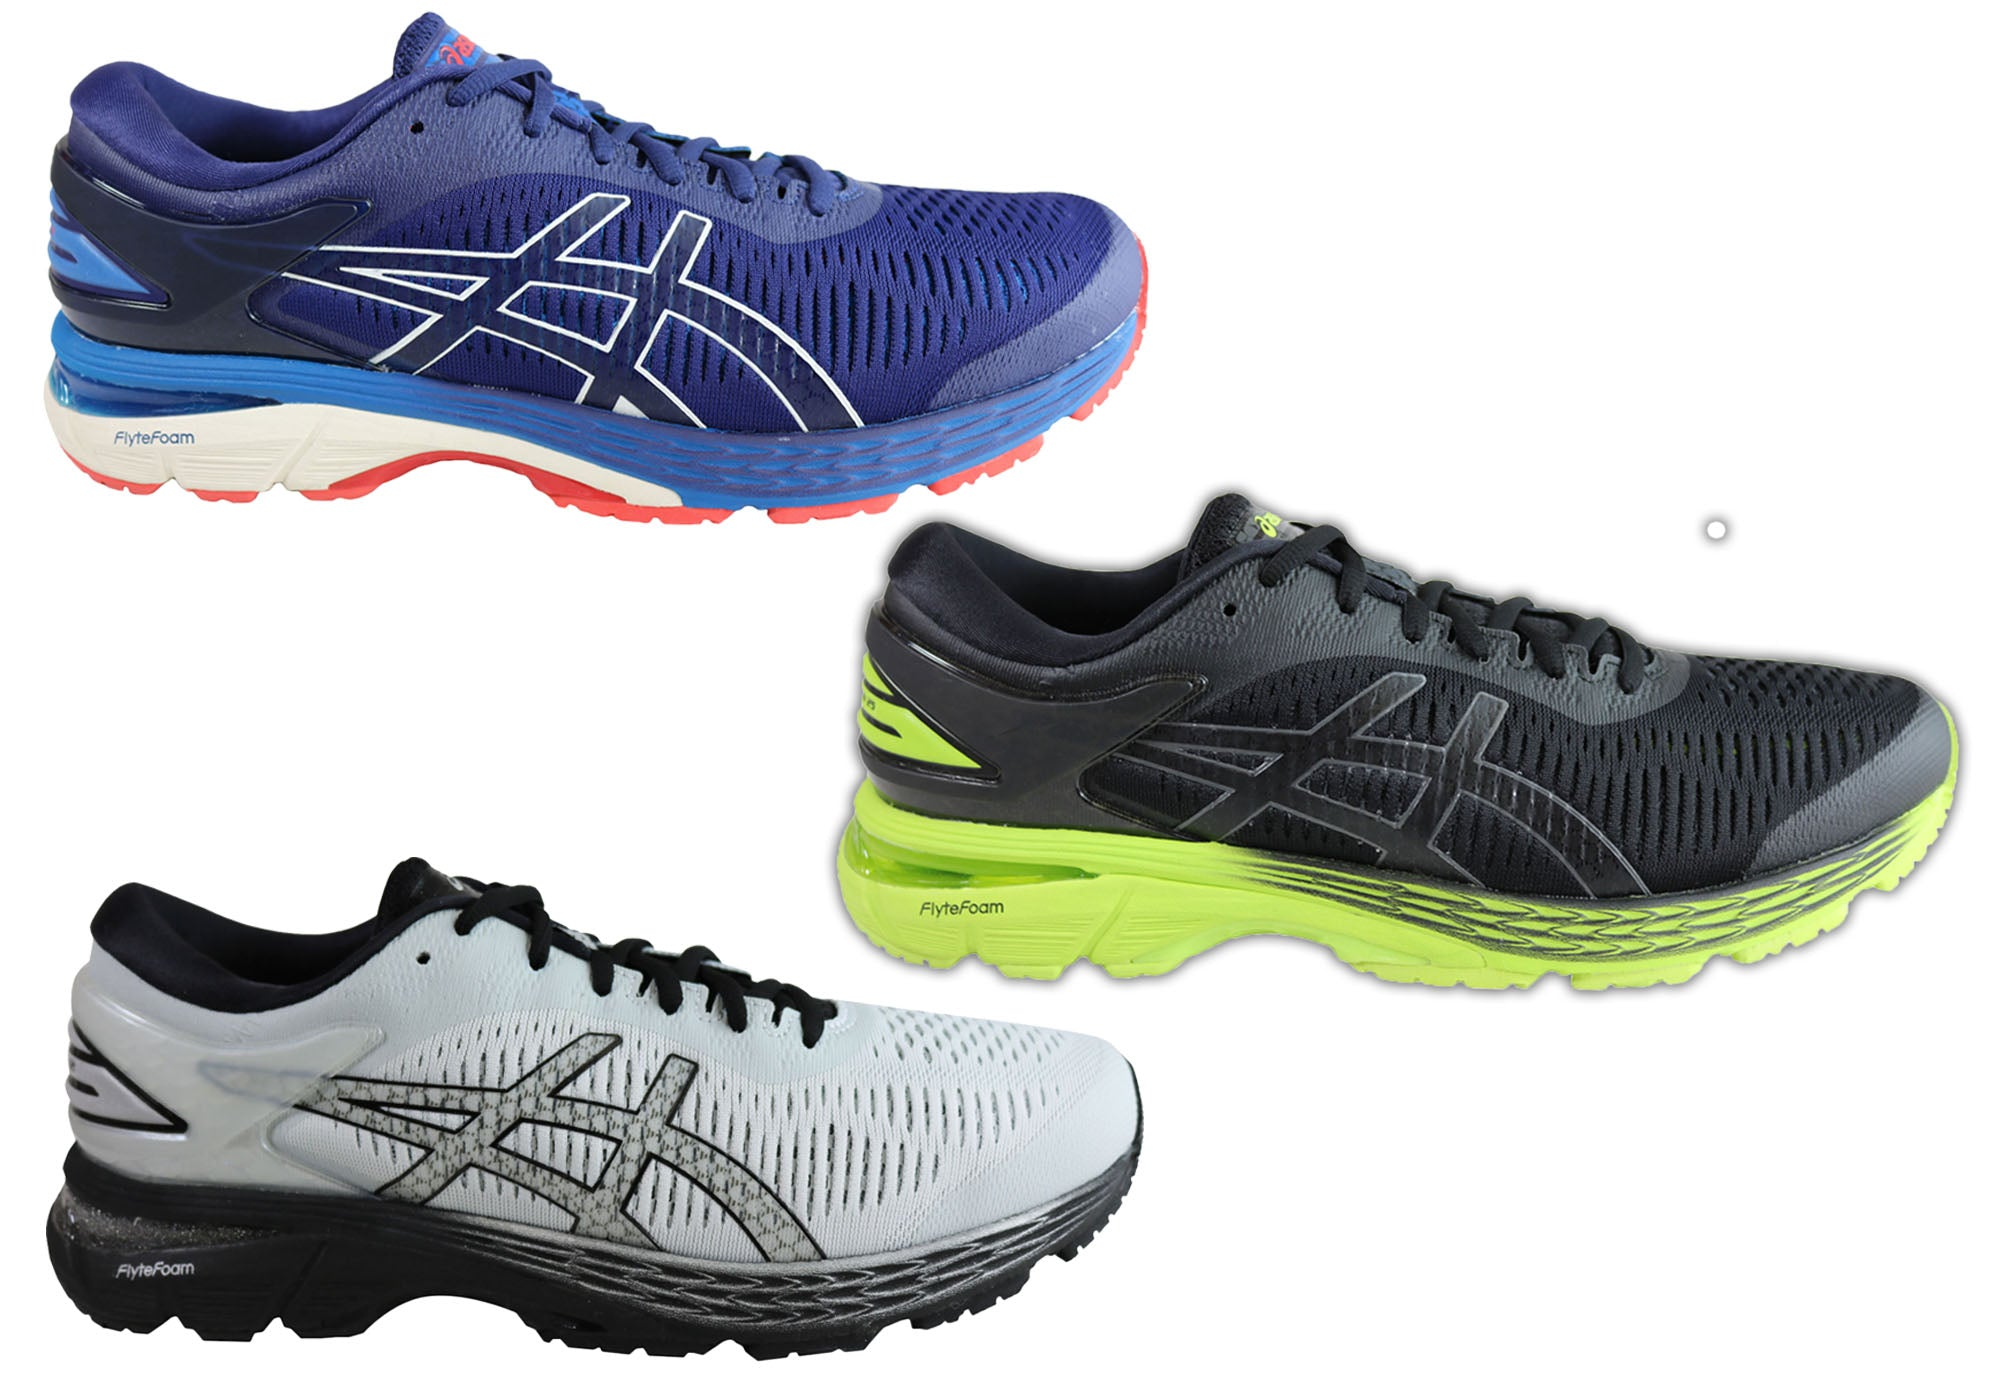 Details about Brand New Asics Gel Kayano 25 Mens Premium Cushioned Running Sport Shoes